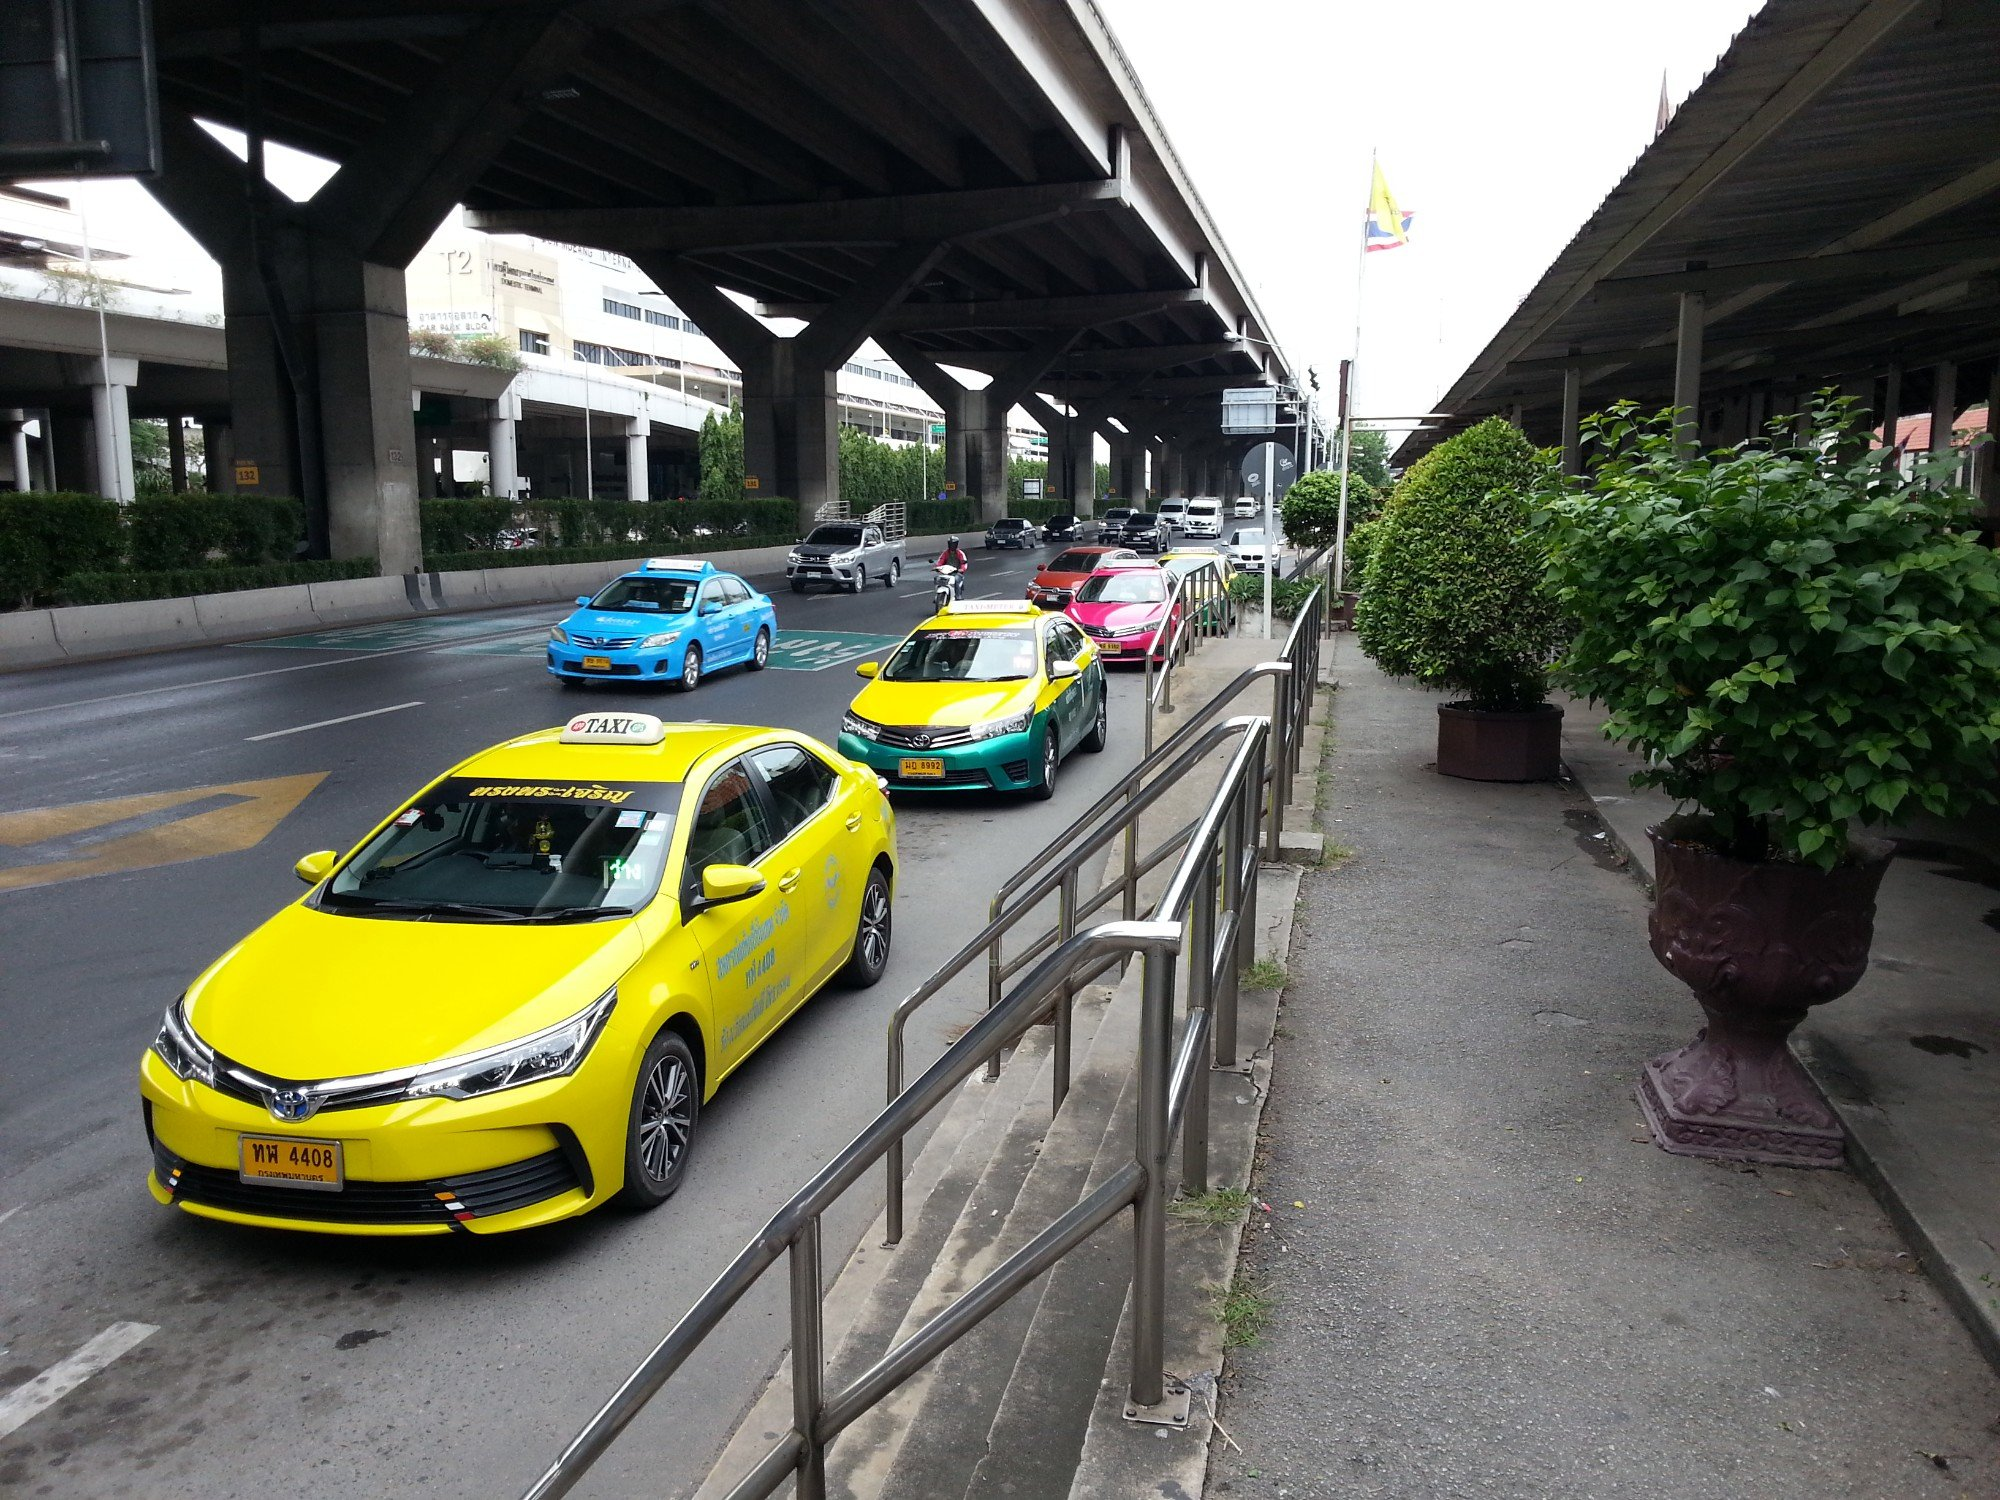 Meter taxis outside Don Mueang Airport Railway Station